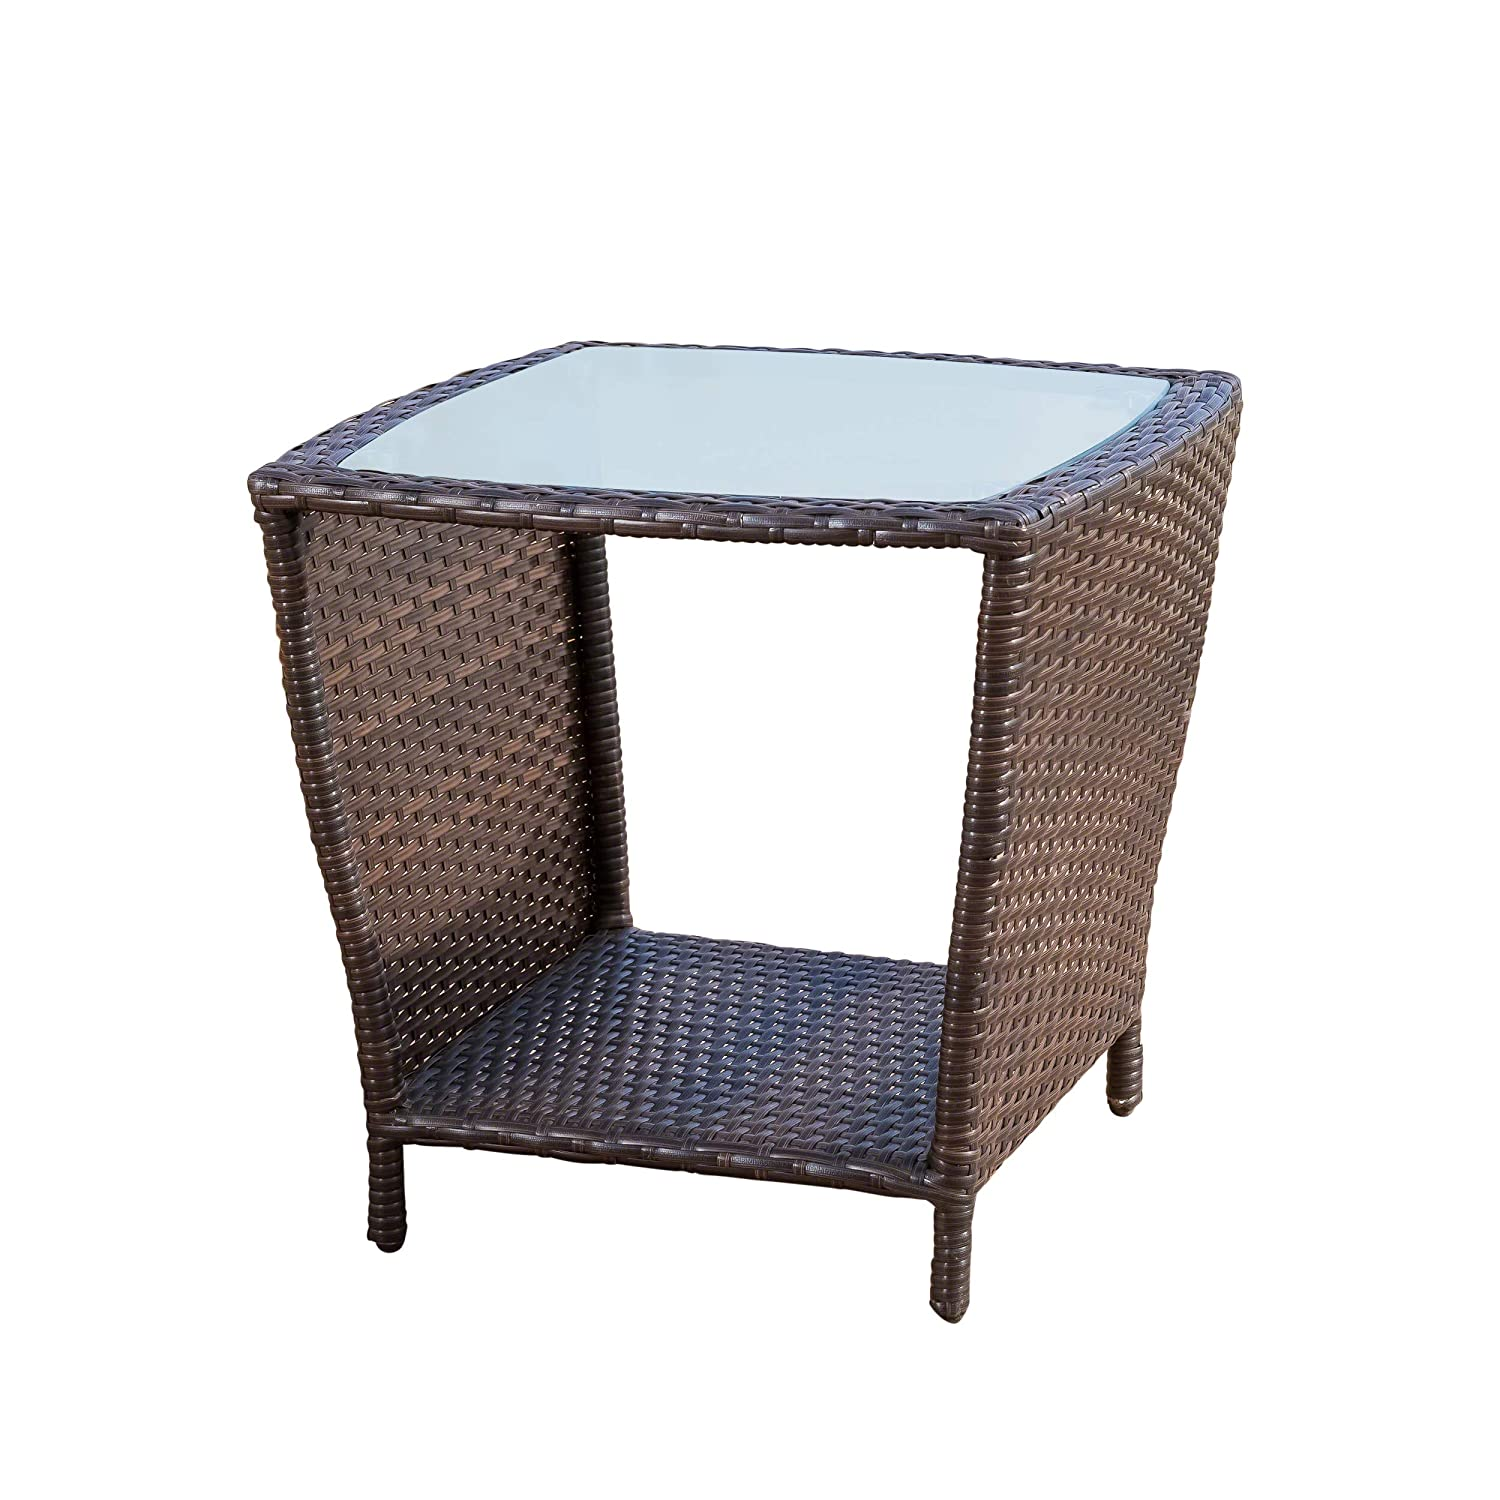 Christopher Knight Home Easton Outdoor Brown Wicker Accent Table